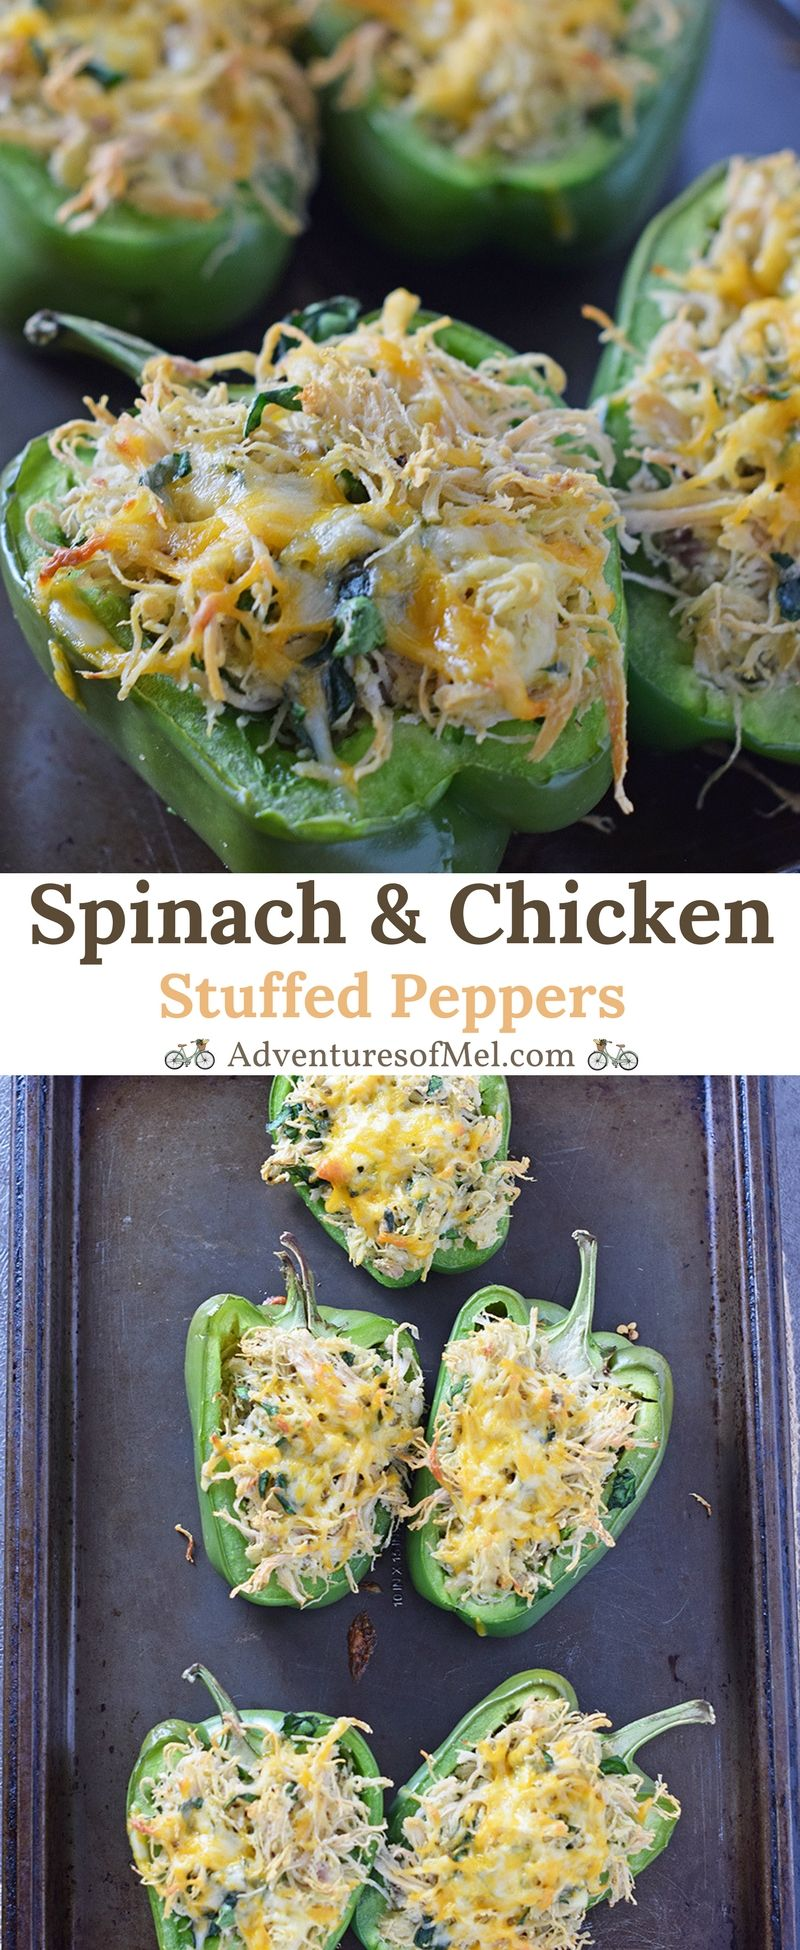 Chicken Stuffed Peppers With Spinach And Melted Cheese Baked In The Oven Healthy Low Carb Delicious Dinner Idea Perfe Stuffed Peppers Yummy Dinners Recipes